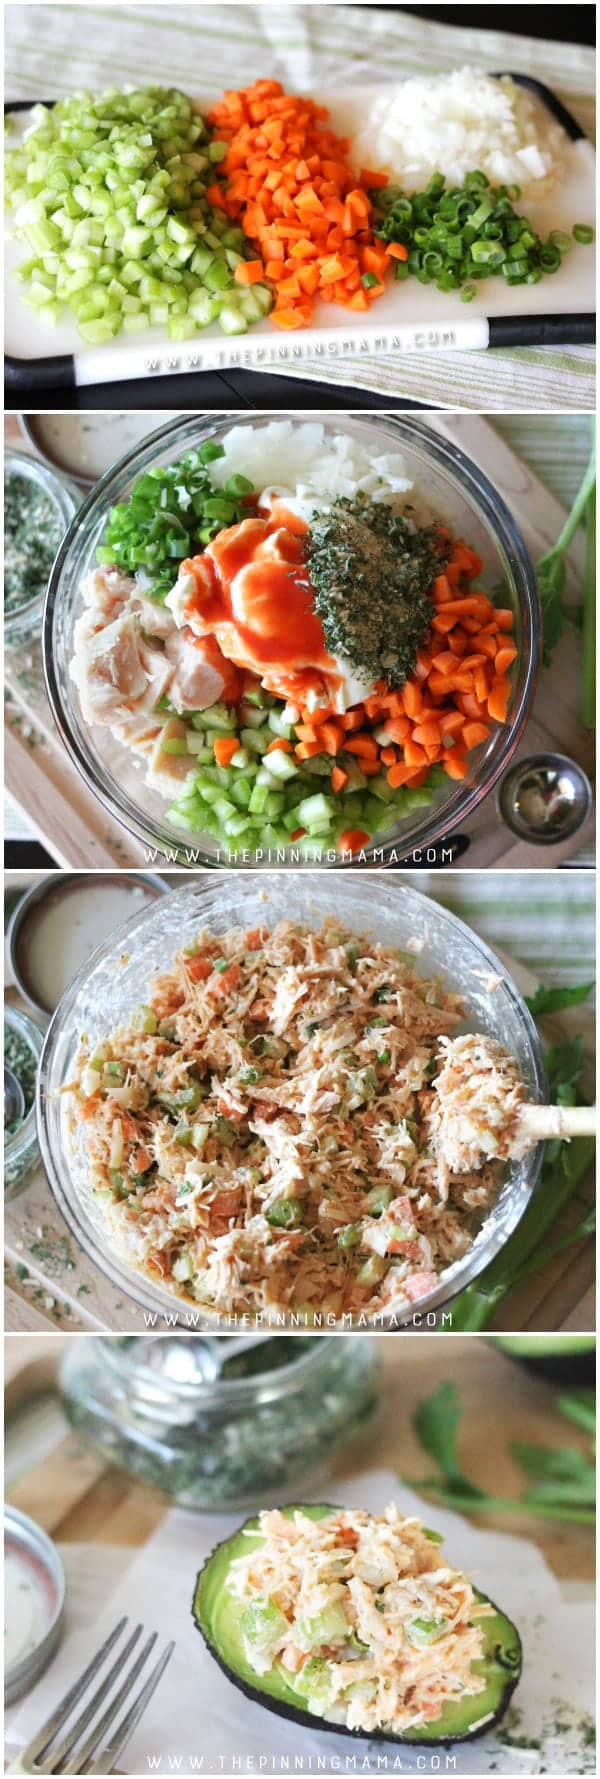 Step by Step how to make Easy Buffalo Ranch Chicken Salad. This easy recipe is so delicious! It is packed with flavors and you can make it as spicy as you want. As a bonus, it is Paleo, Whole30 Compliant, gluten free, dairy free, and just plain tasty whether you are following a special diet or not.